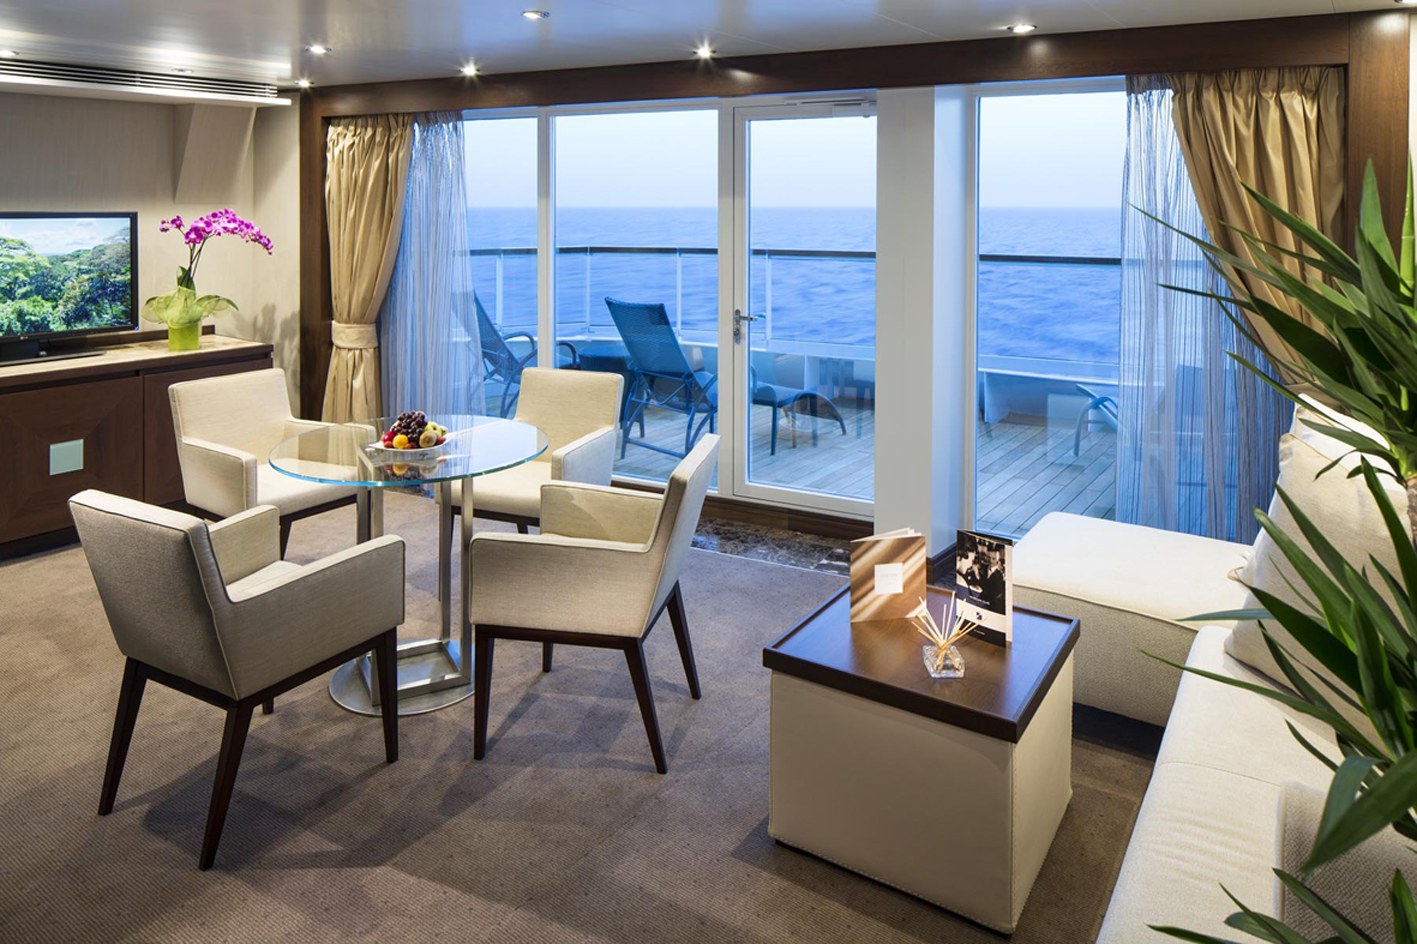 Ultra Luxury Penthouse Spa Suites Added To Seabourn Odyssey